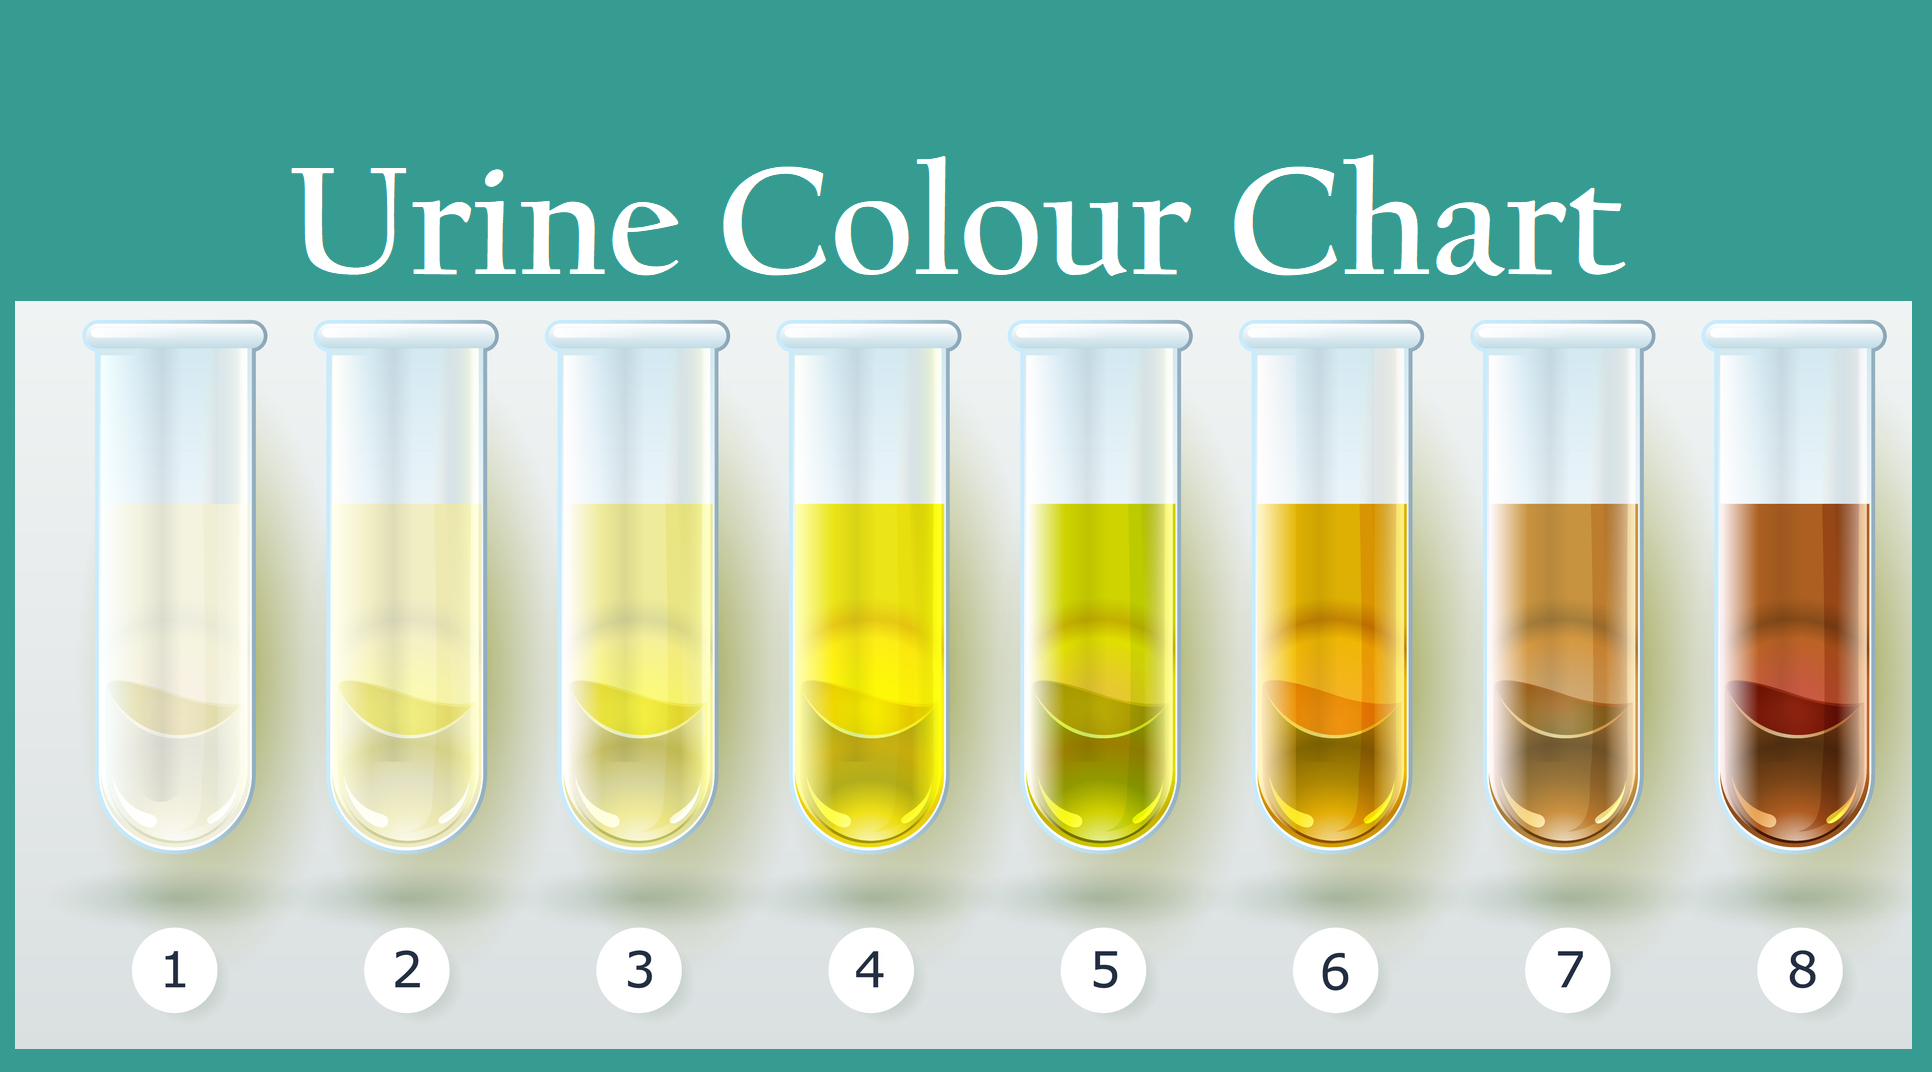 Your Urine Colour And What It Says About Your Health